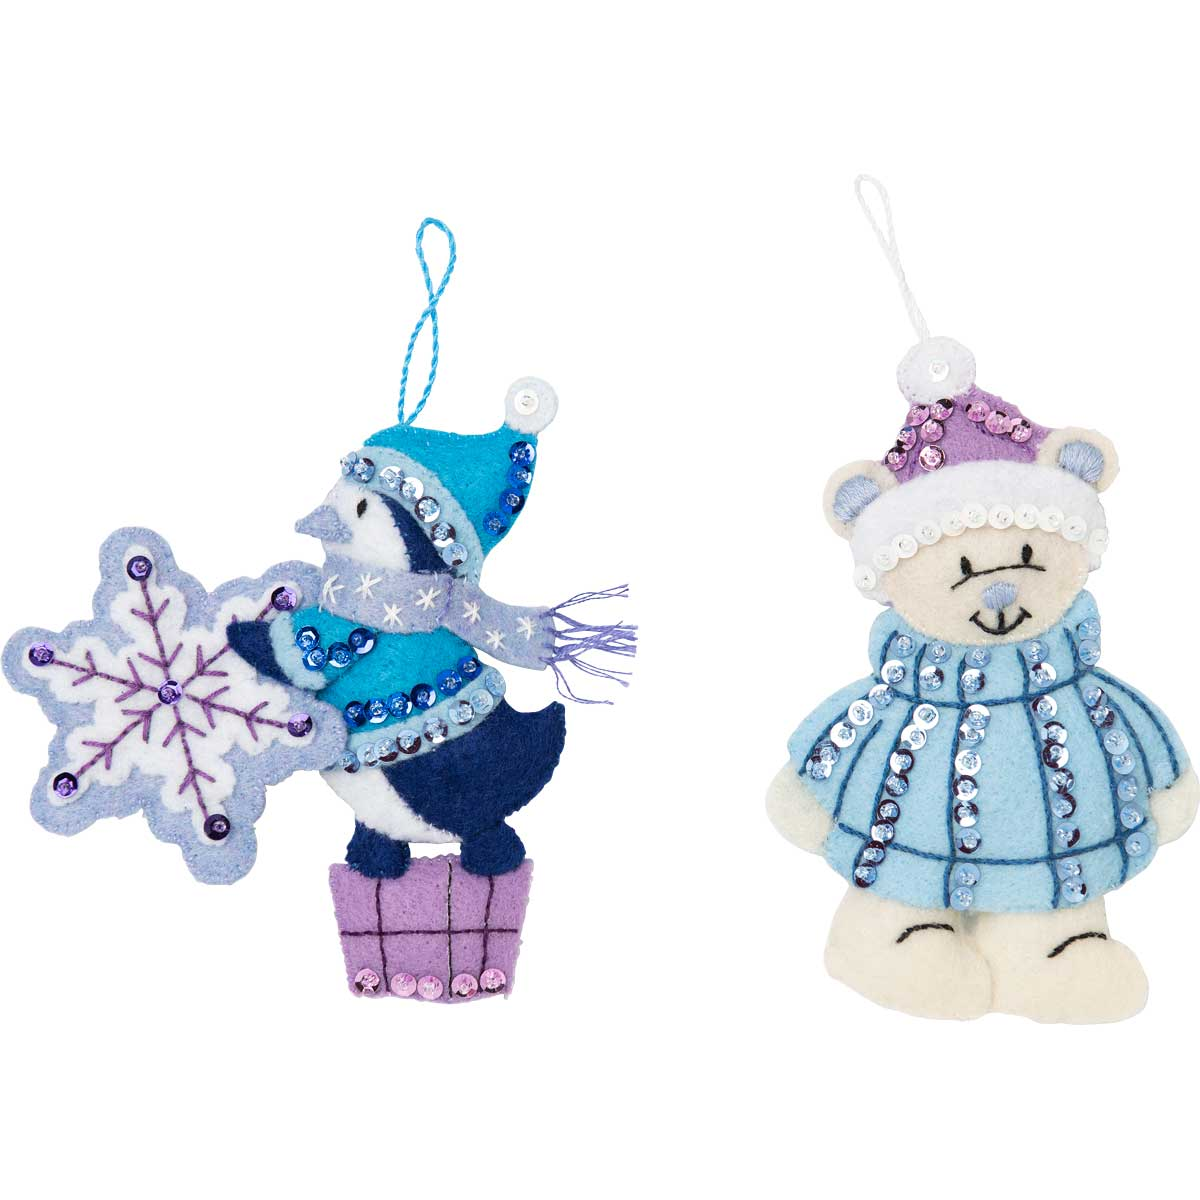 Bucilla ® Seasonal - Felt - Tree Trimmer Kits - Hallmark - Wintry Wonderland